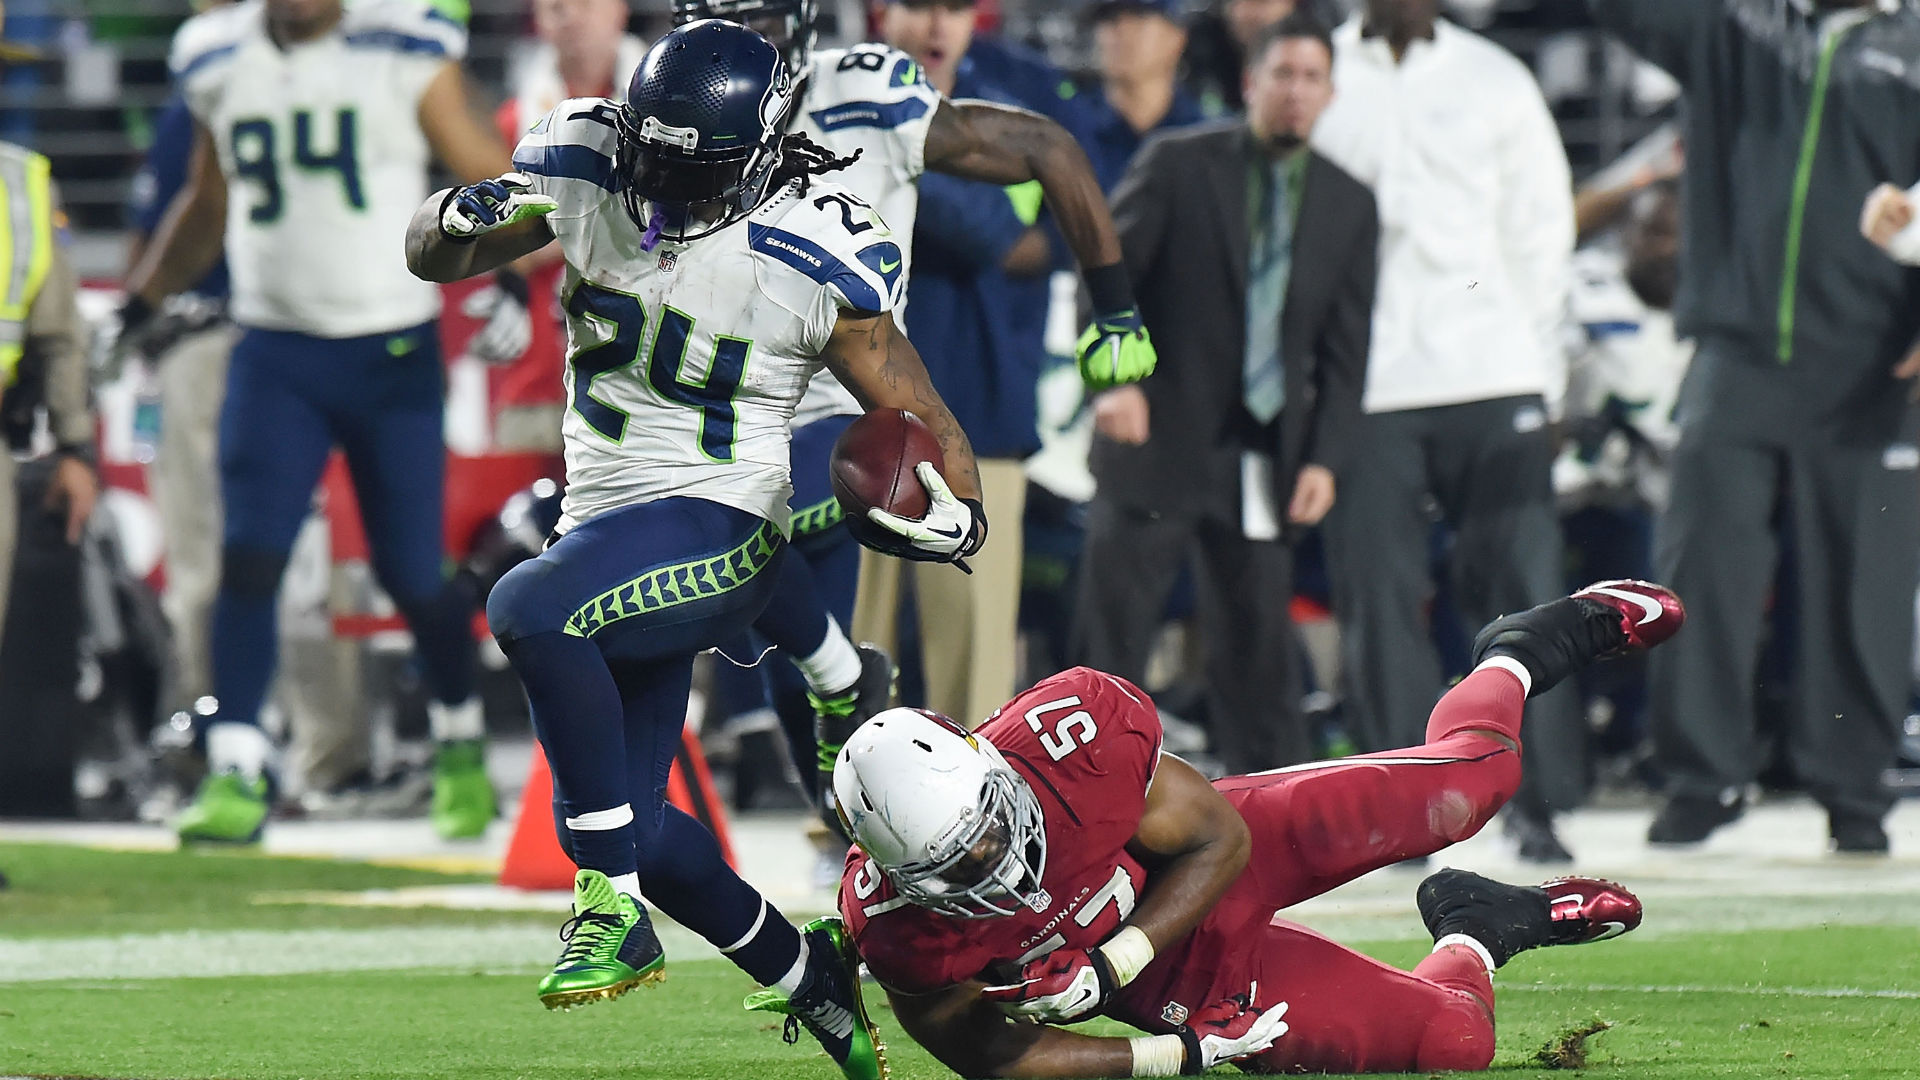 Rams vs. Seahawks betting lines and pick – Spread inflated as Seattle eyes home-field advantage